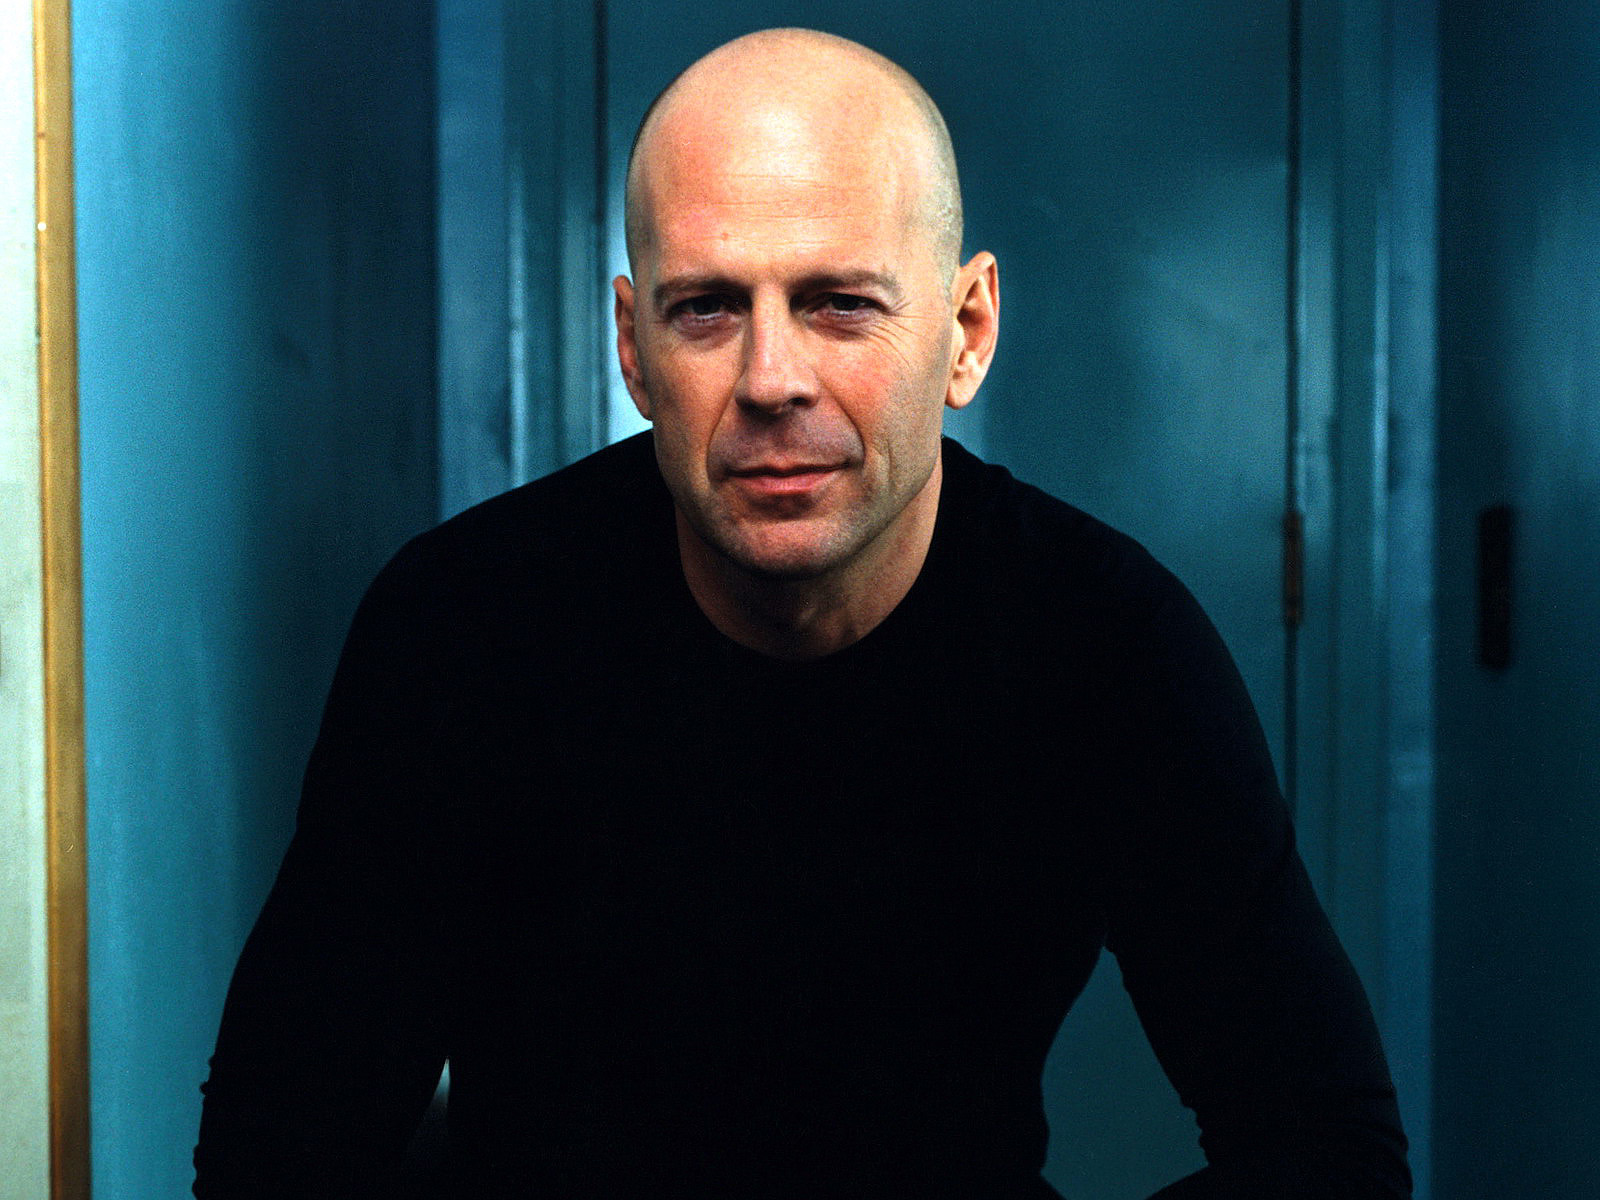 http://1.bp.blogspot.com/-2RxGbpiQLig/TtcIgnLzBjI/AAAAAAAAAcY/cp94b-ABBsE/s1600/Bruce-Willis-pictures-desktop-Wallpapers-HD-photo-images-1.jpg